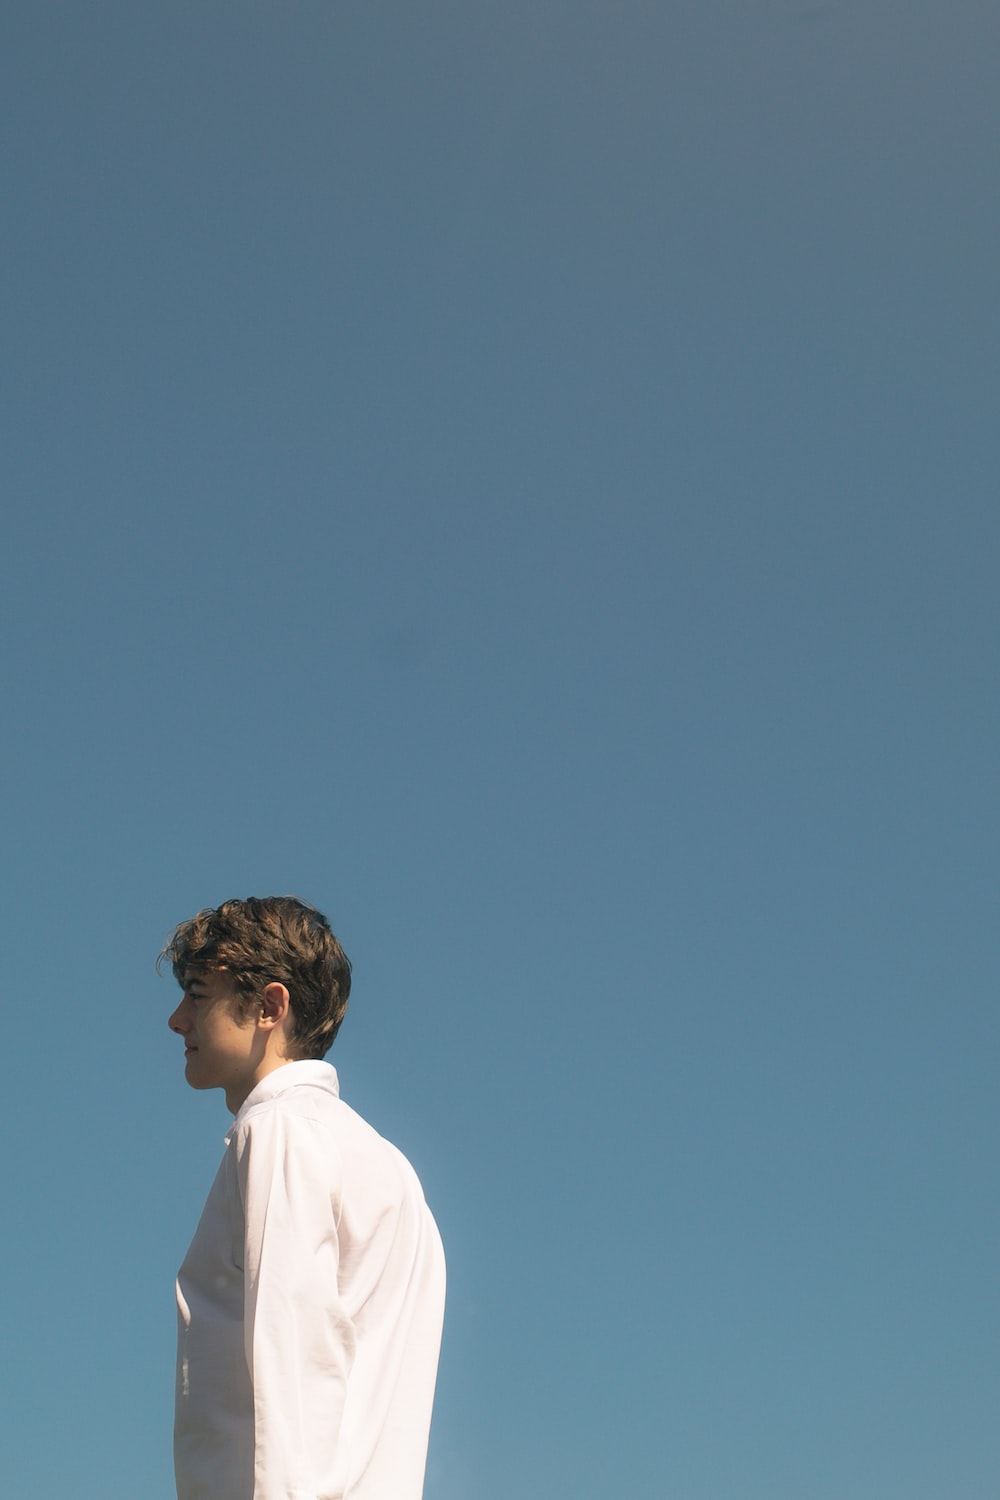 man in white shirt standing under blue sky during daytime